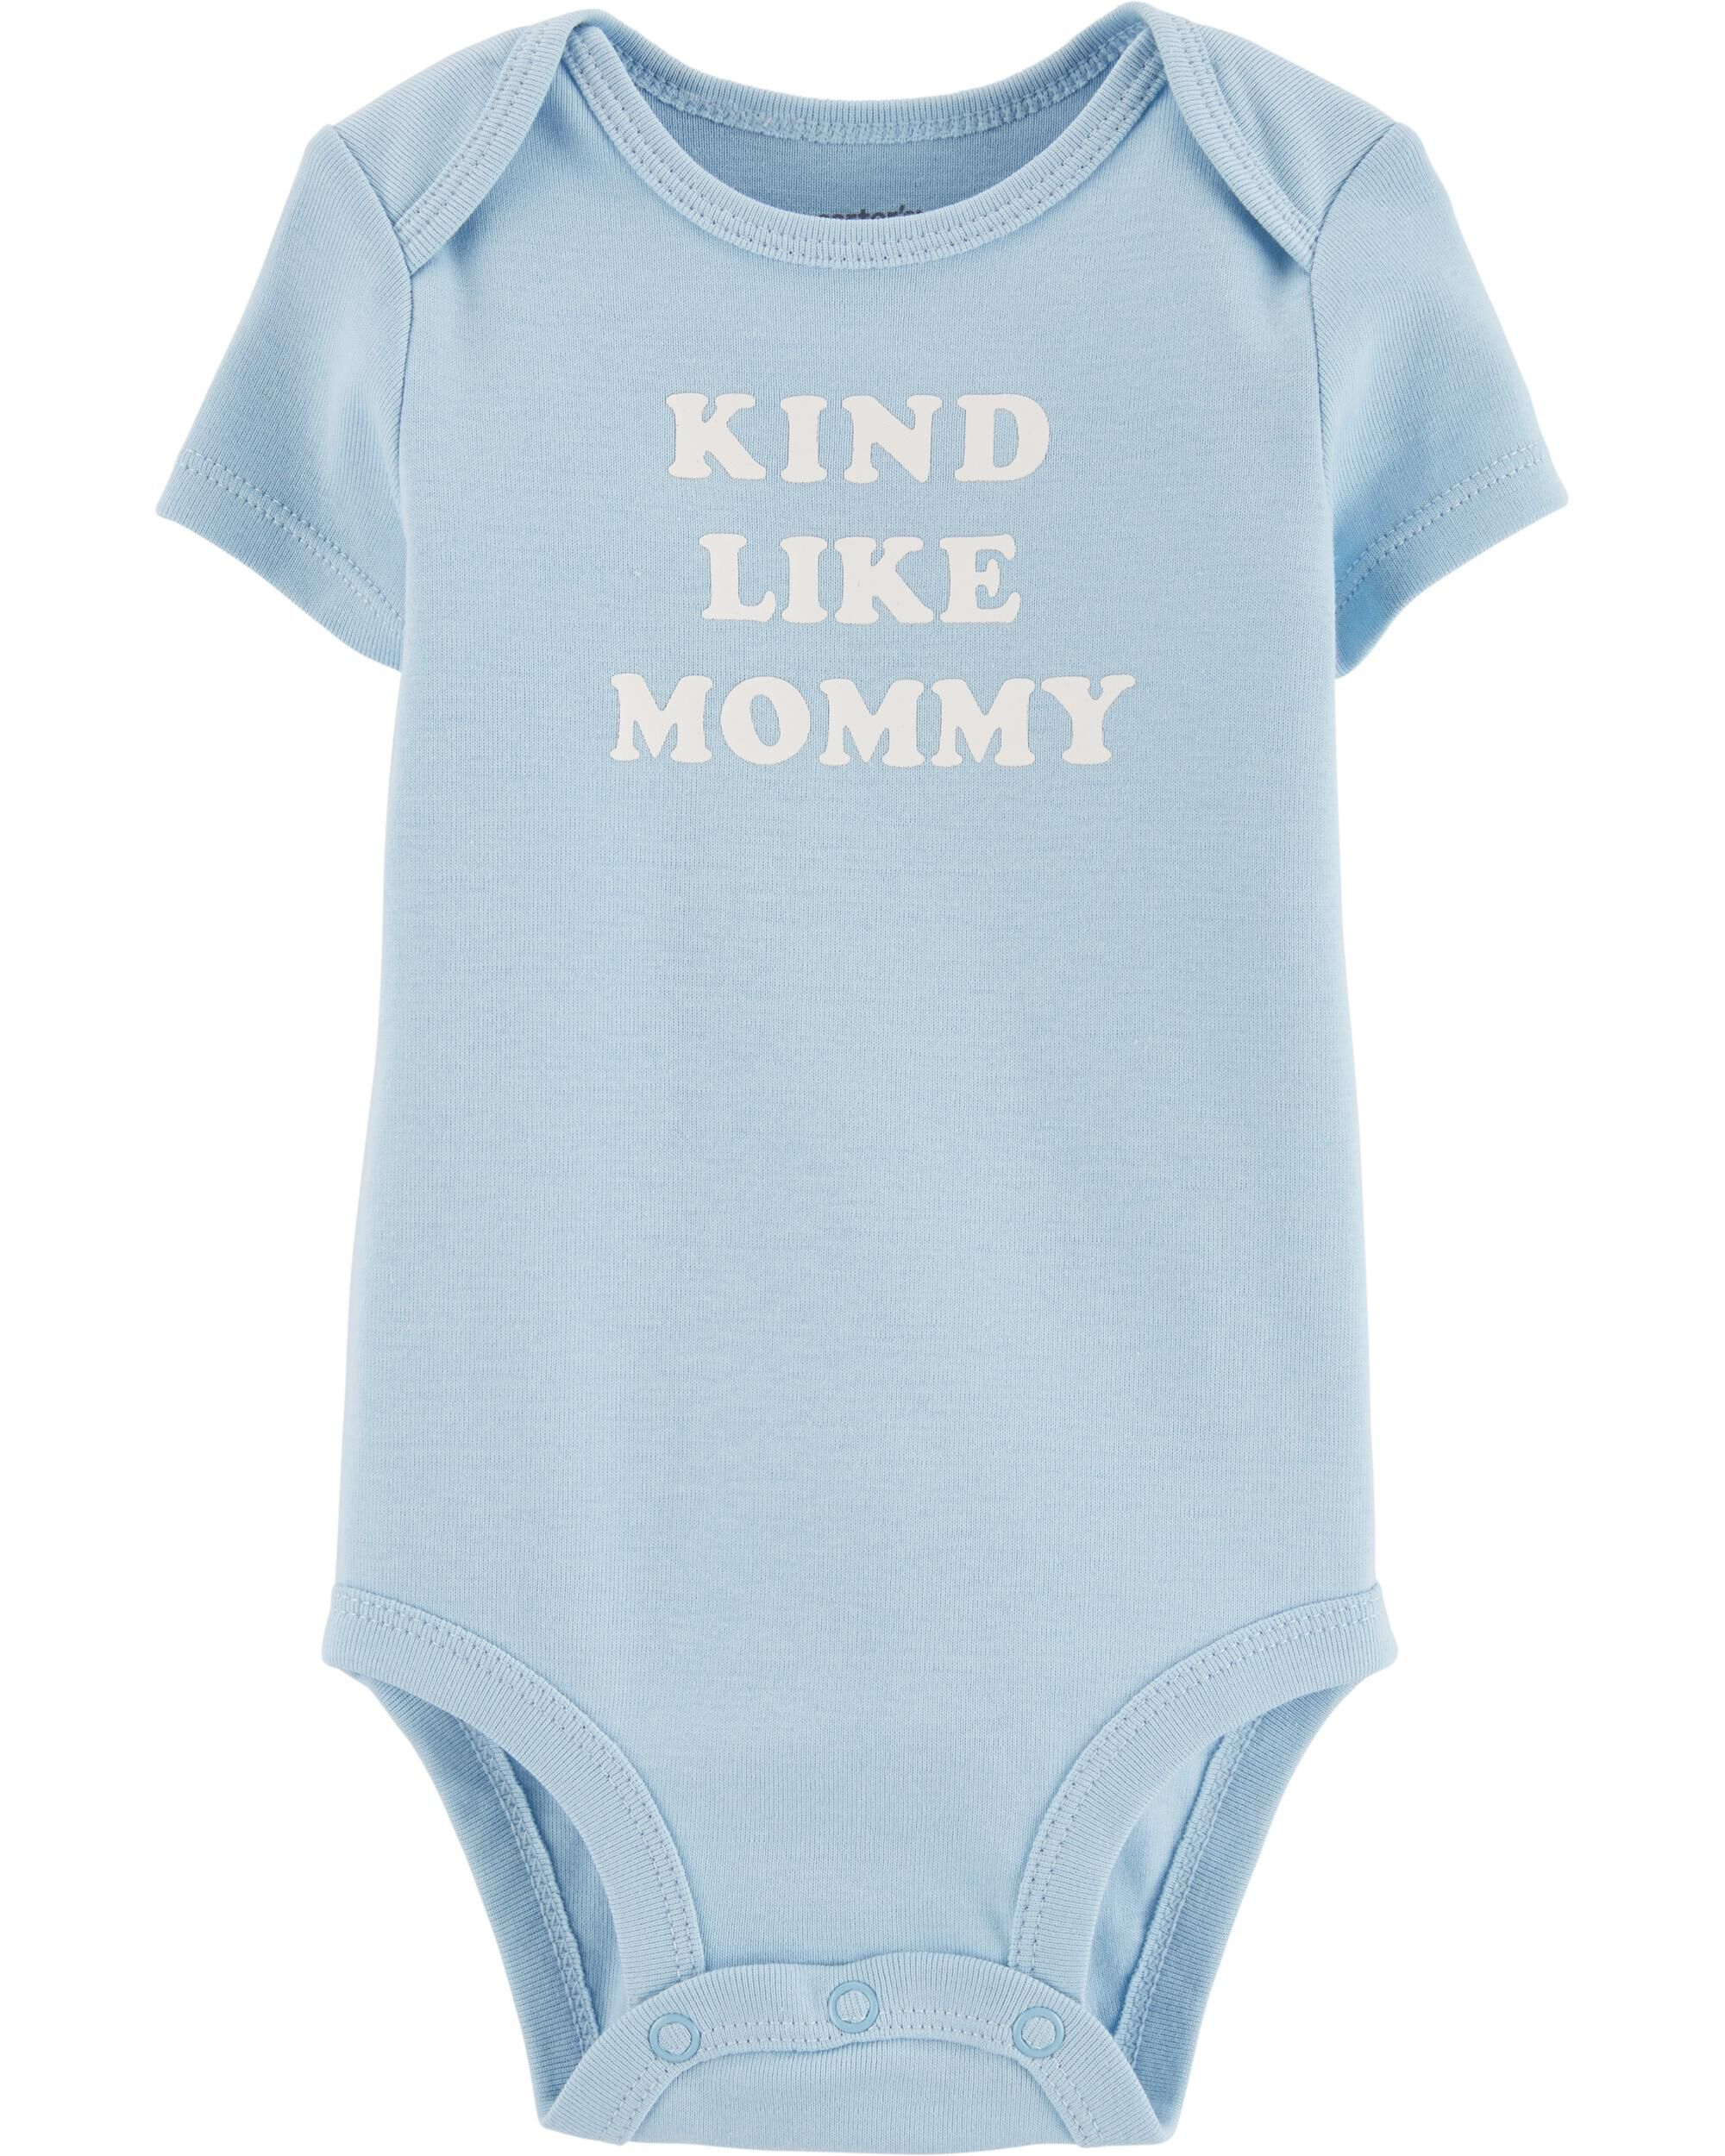 *DOORBUSTER* Kind Like Mommy Collectible Bodysuit